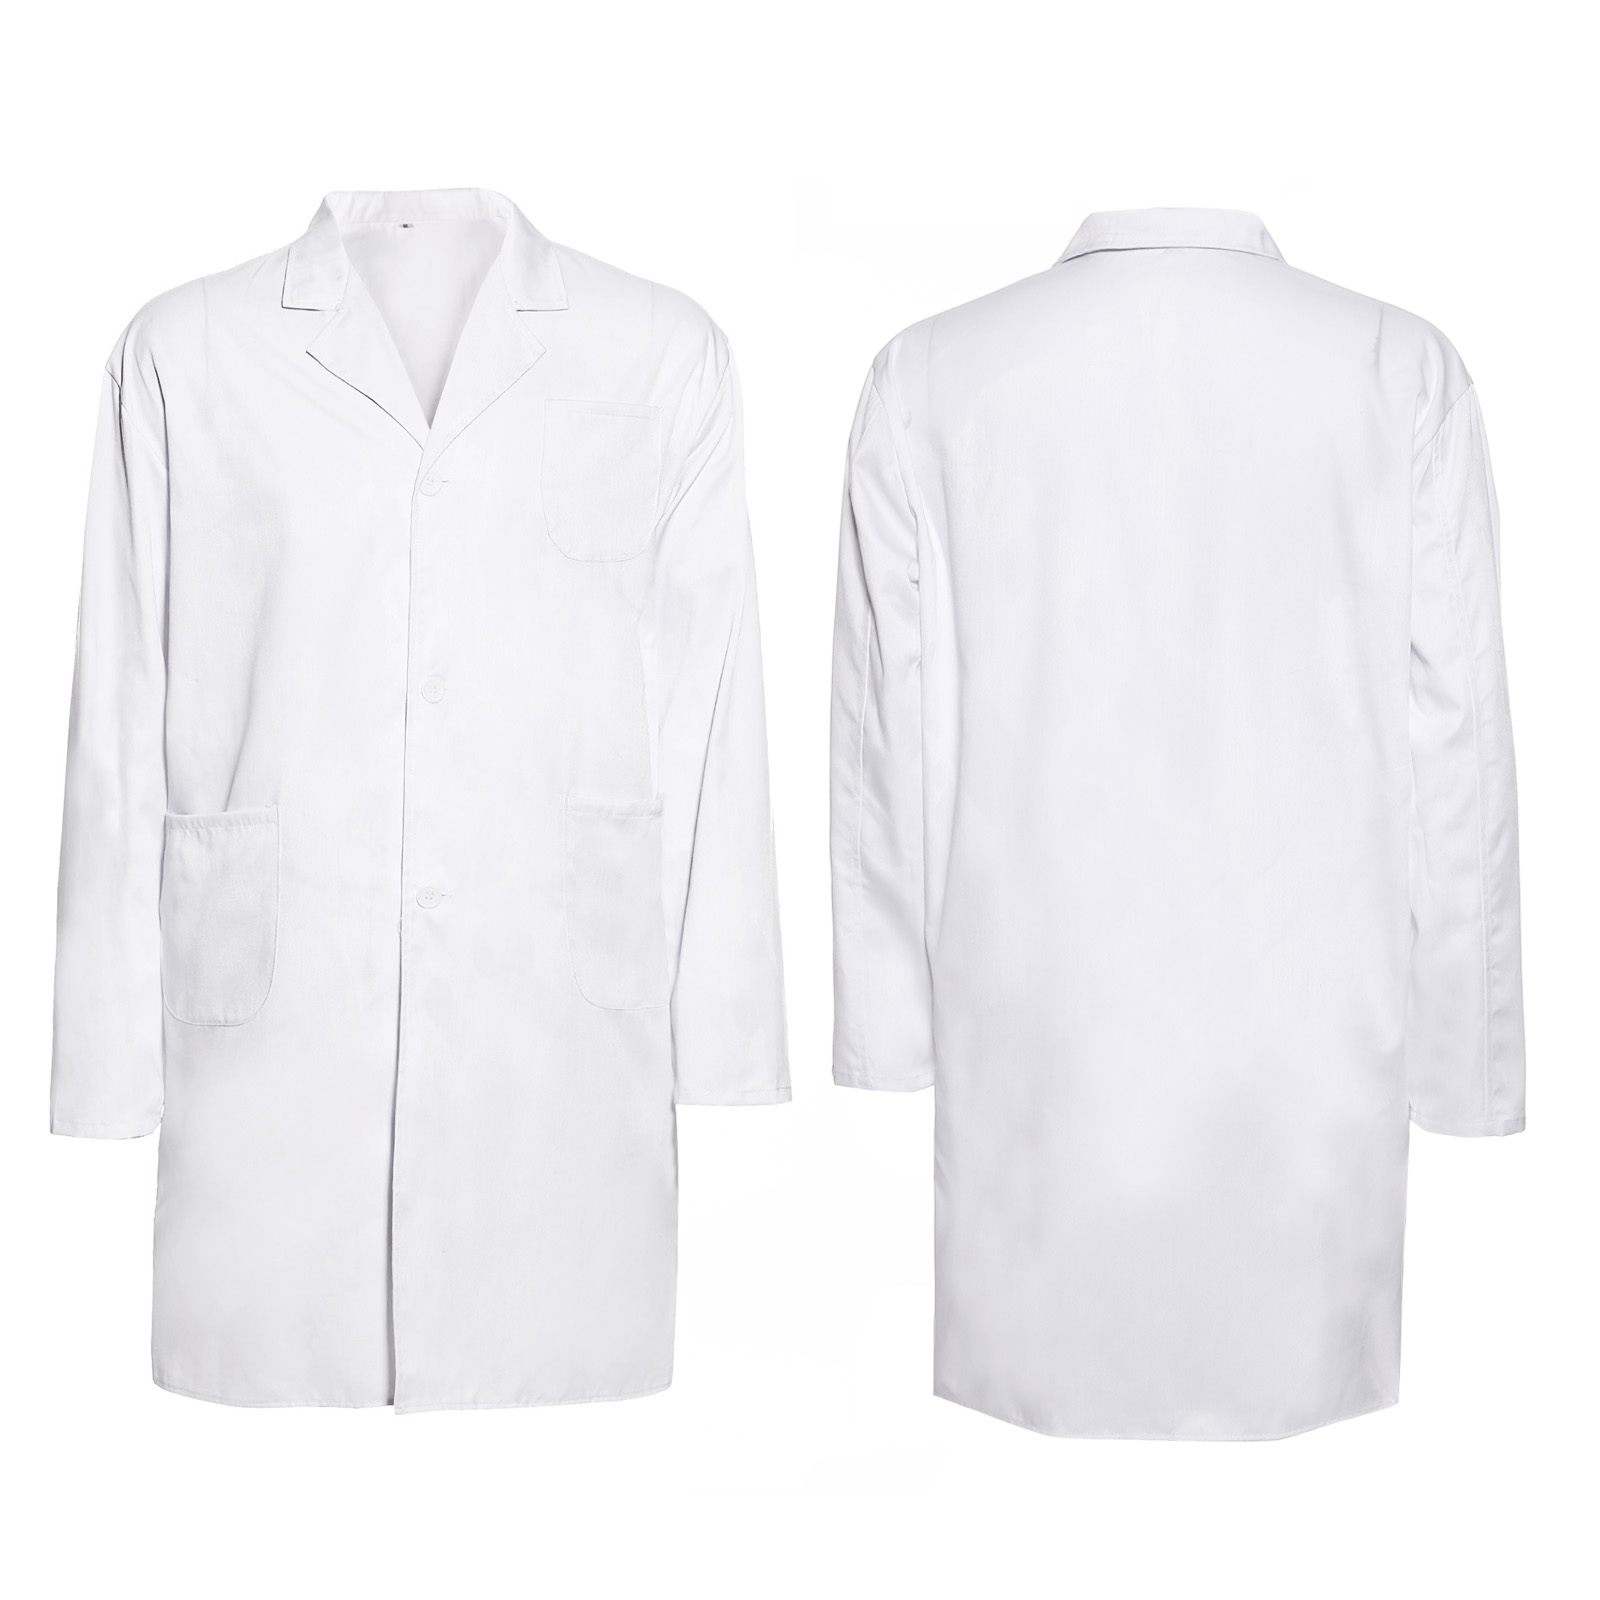 New White Lab Coat Medical Doctor Technician Food Hygiene